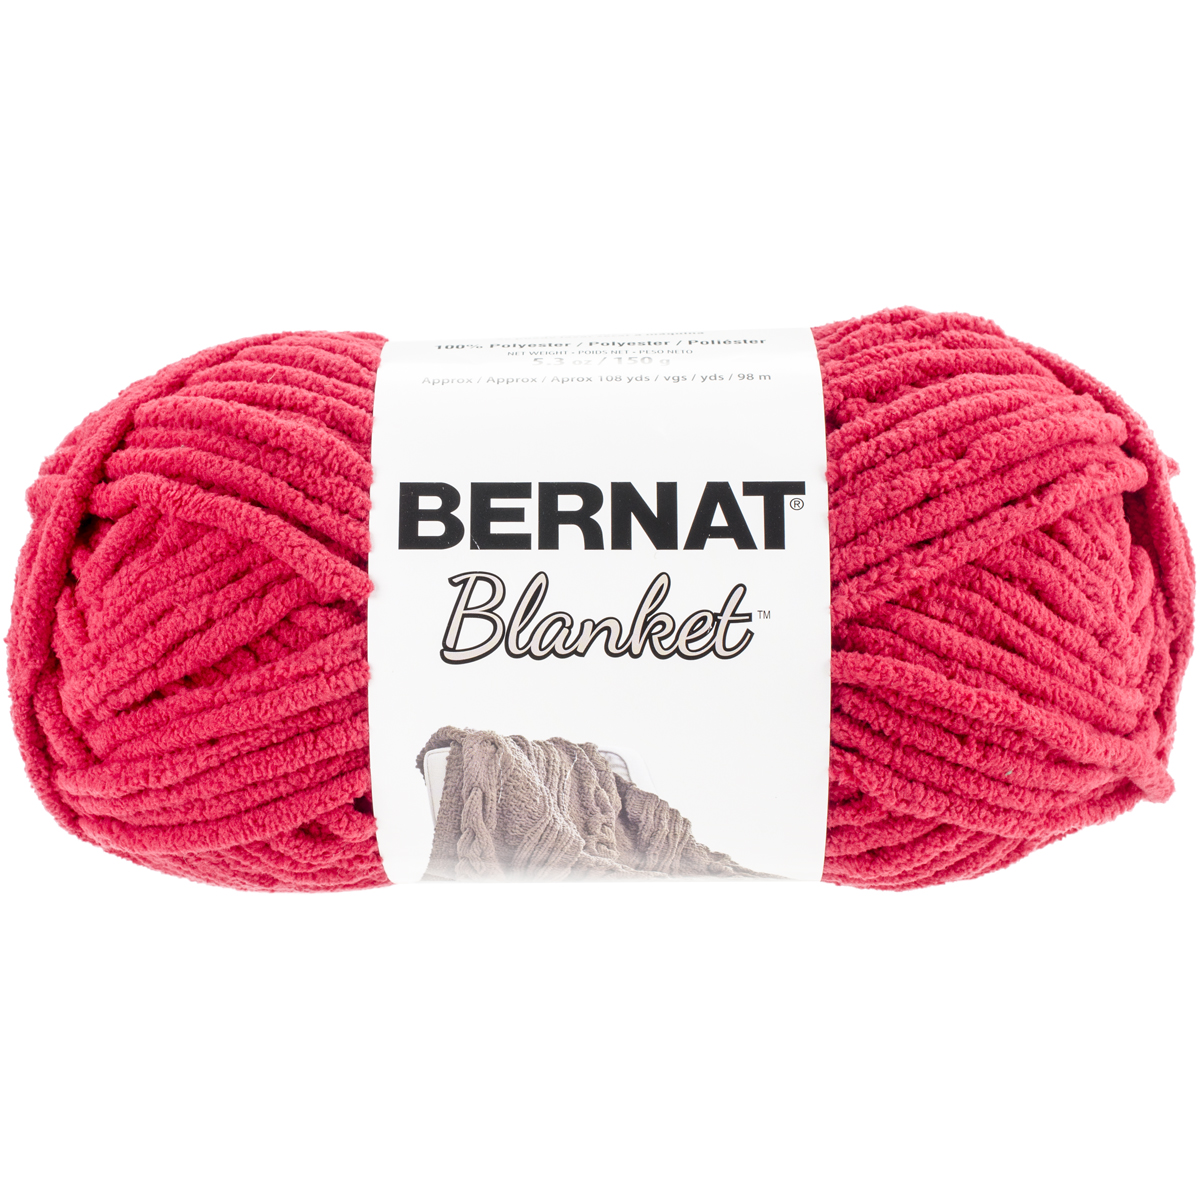 Bernat Blanket Yarn, 150g, Cranberry